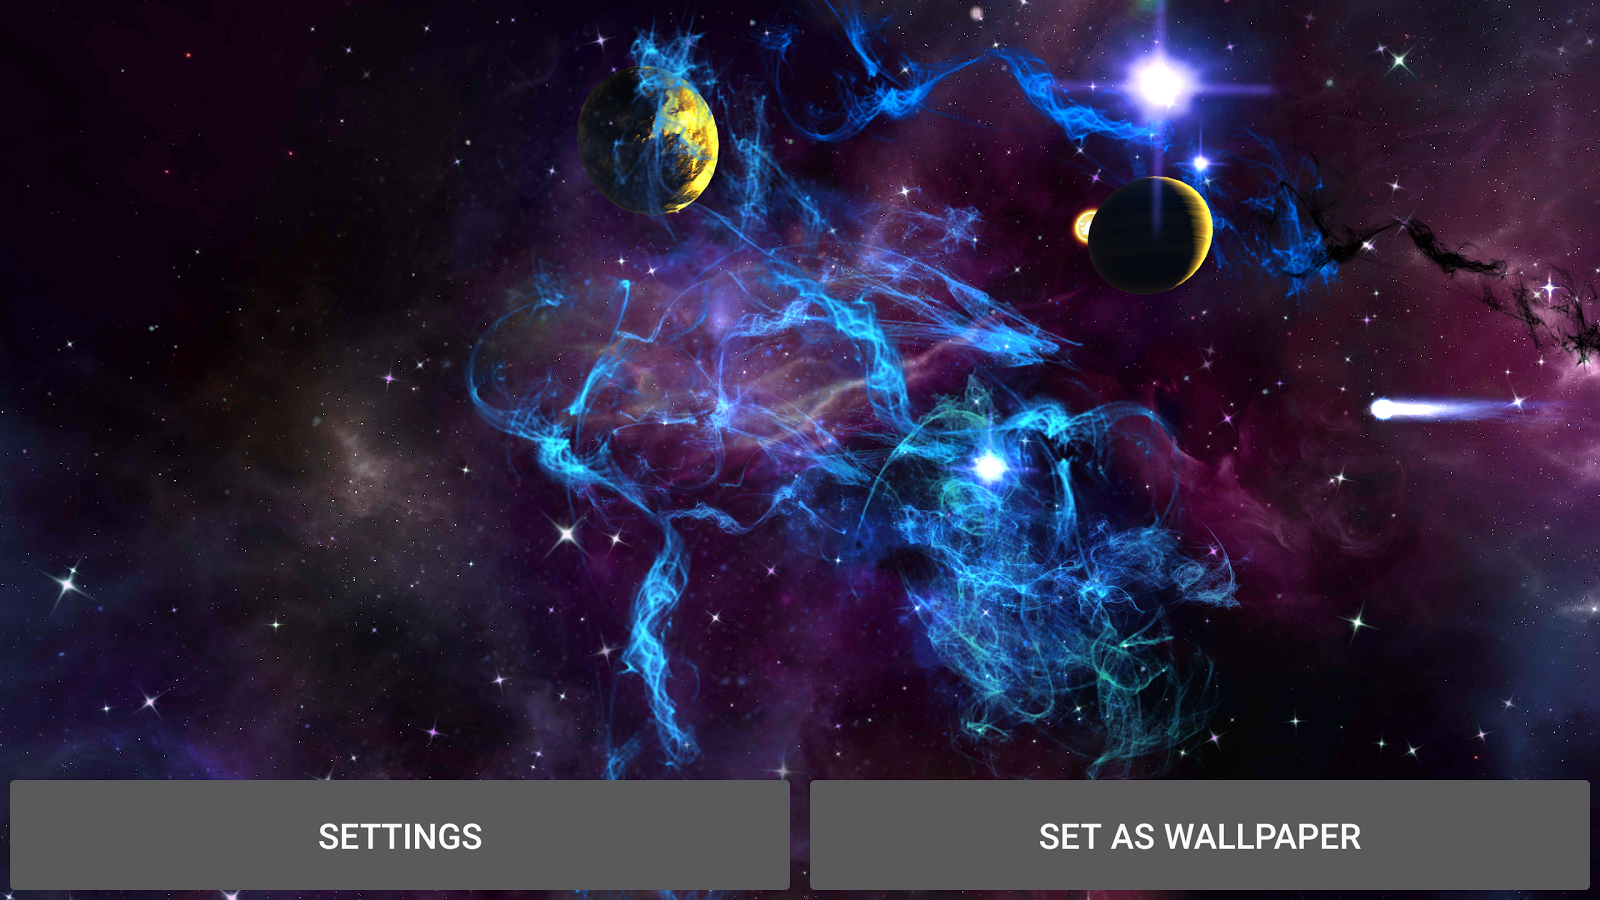 3d Parallax Wallpaper Pro Fantasy Galaxy Live Wallpaper Android Apps On Google Play